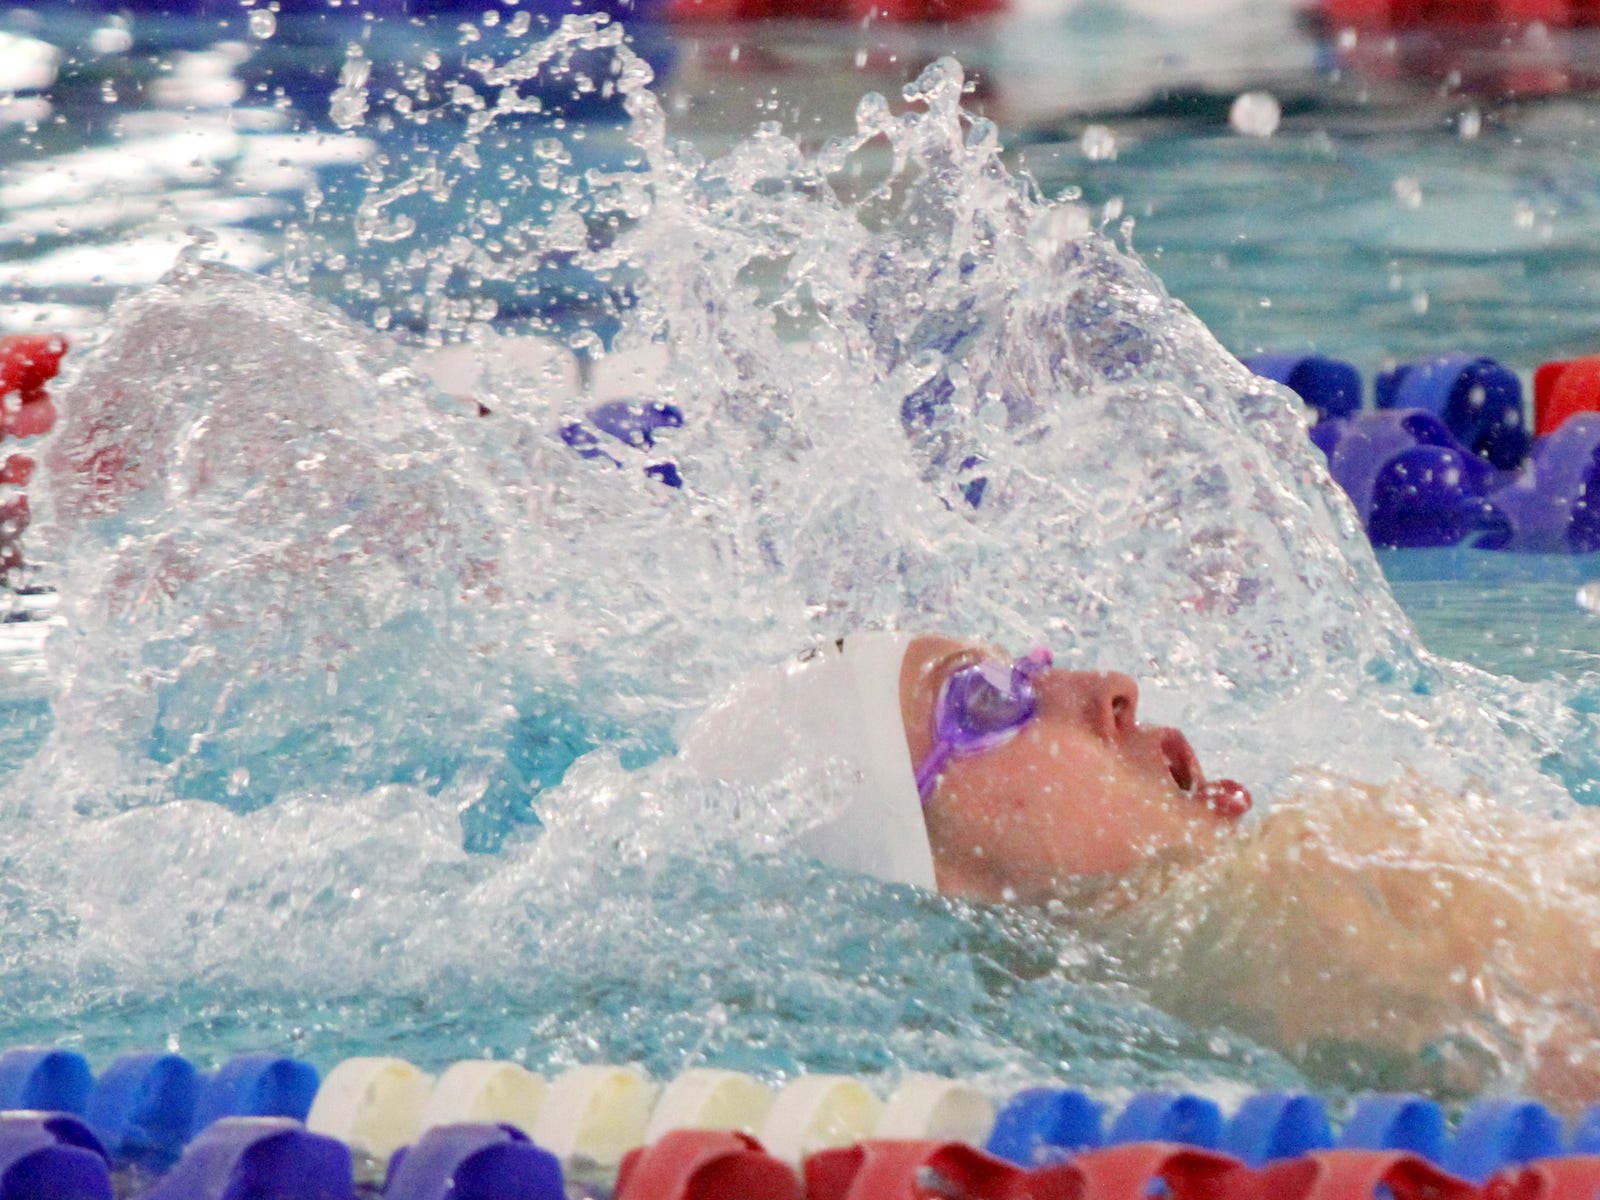 Kenyon Winkky of Horseheads swims to a 100-yard backstroke title during the Section 4 Class A championships Feb. 14 at Owego Free Academy.